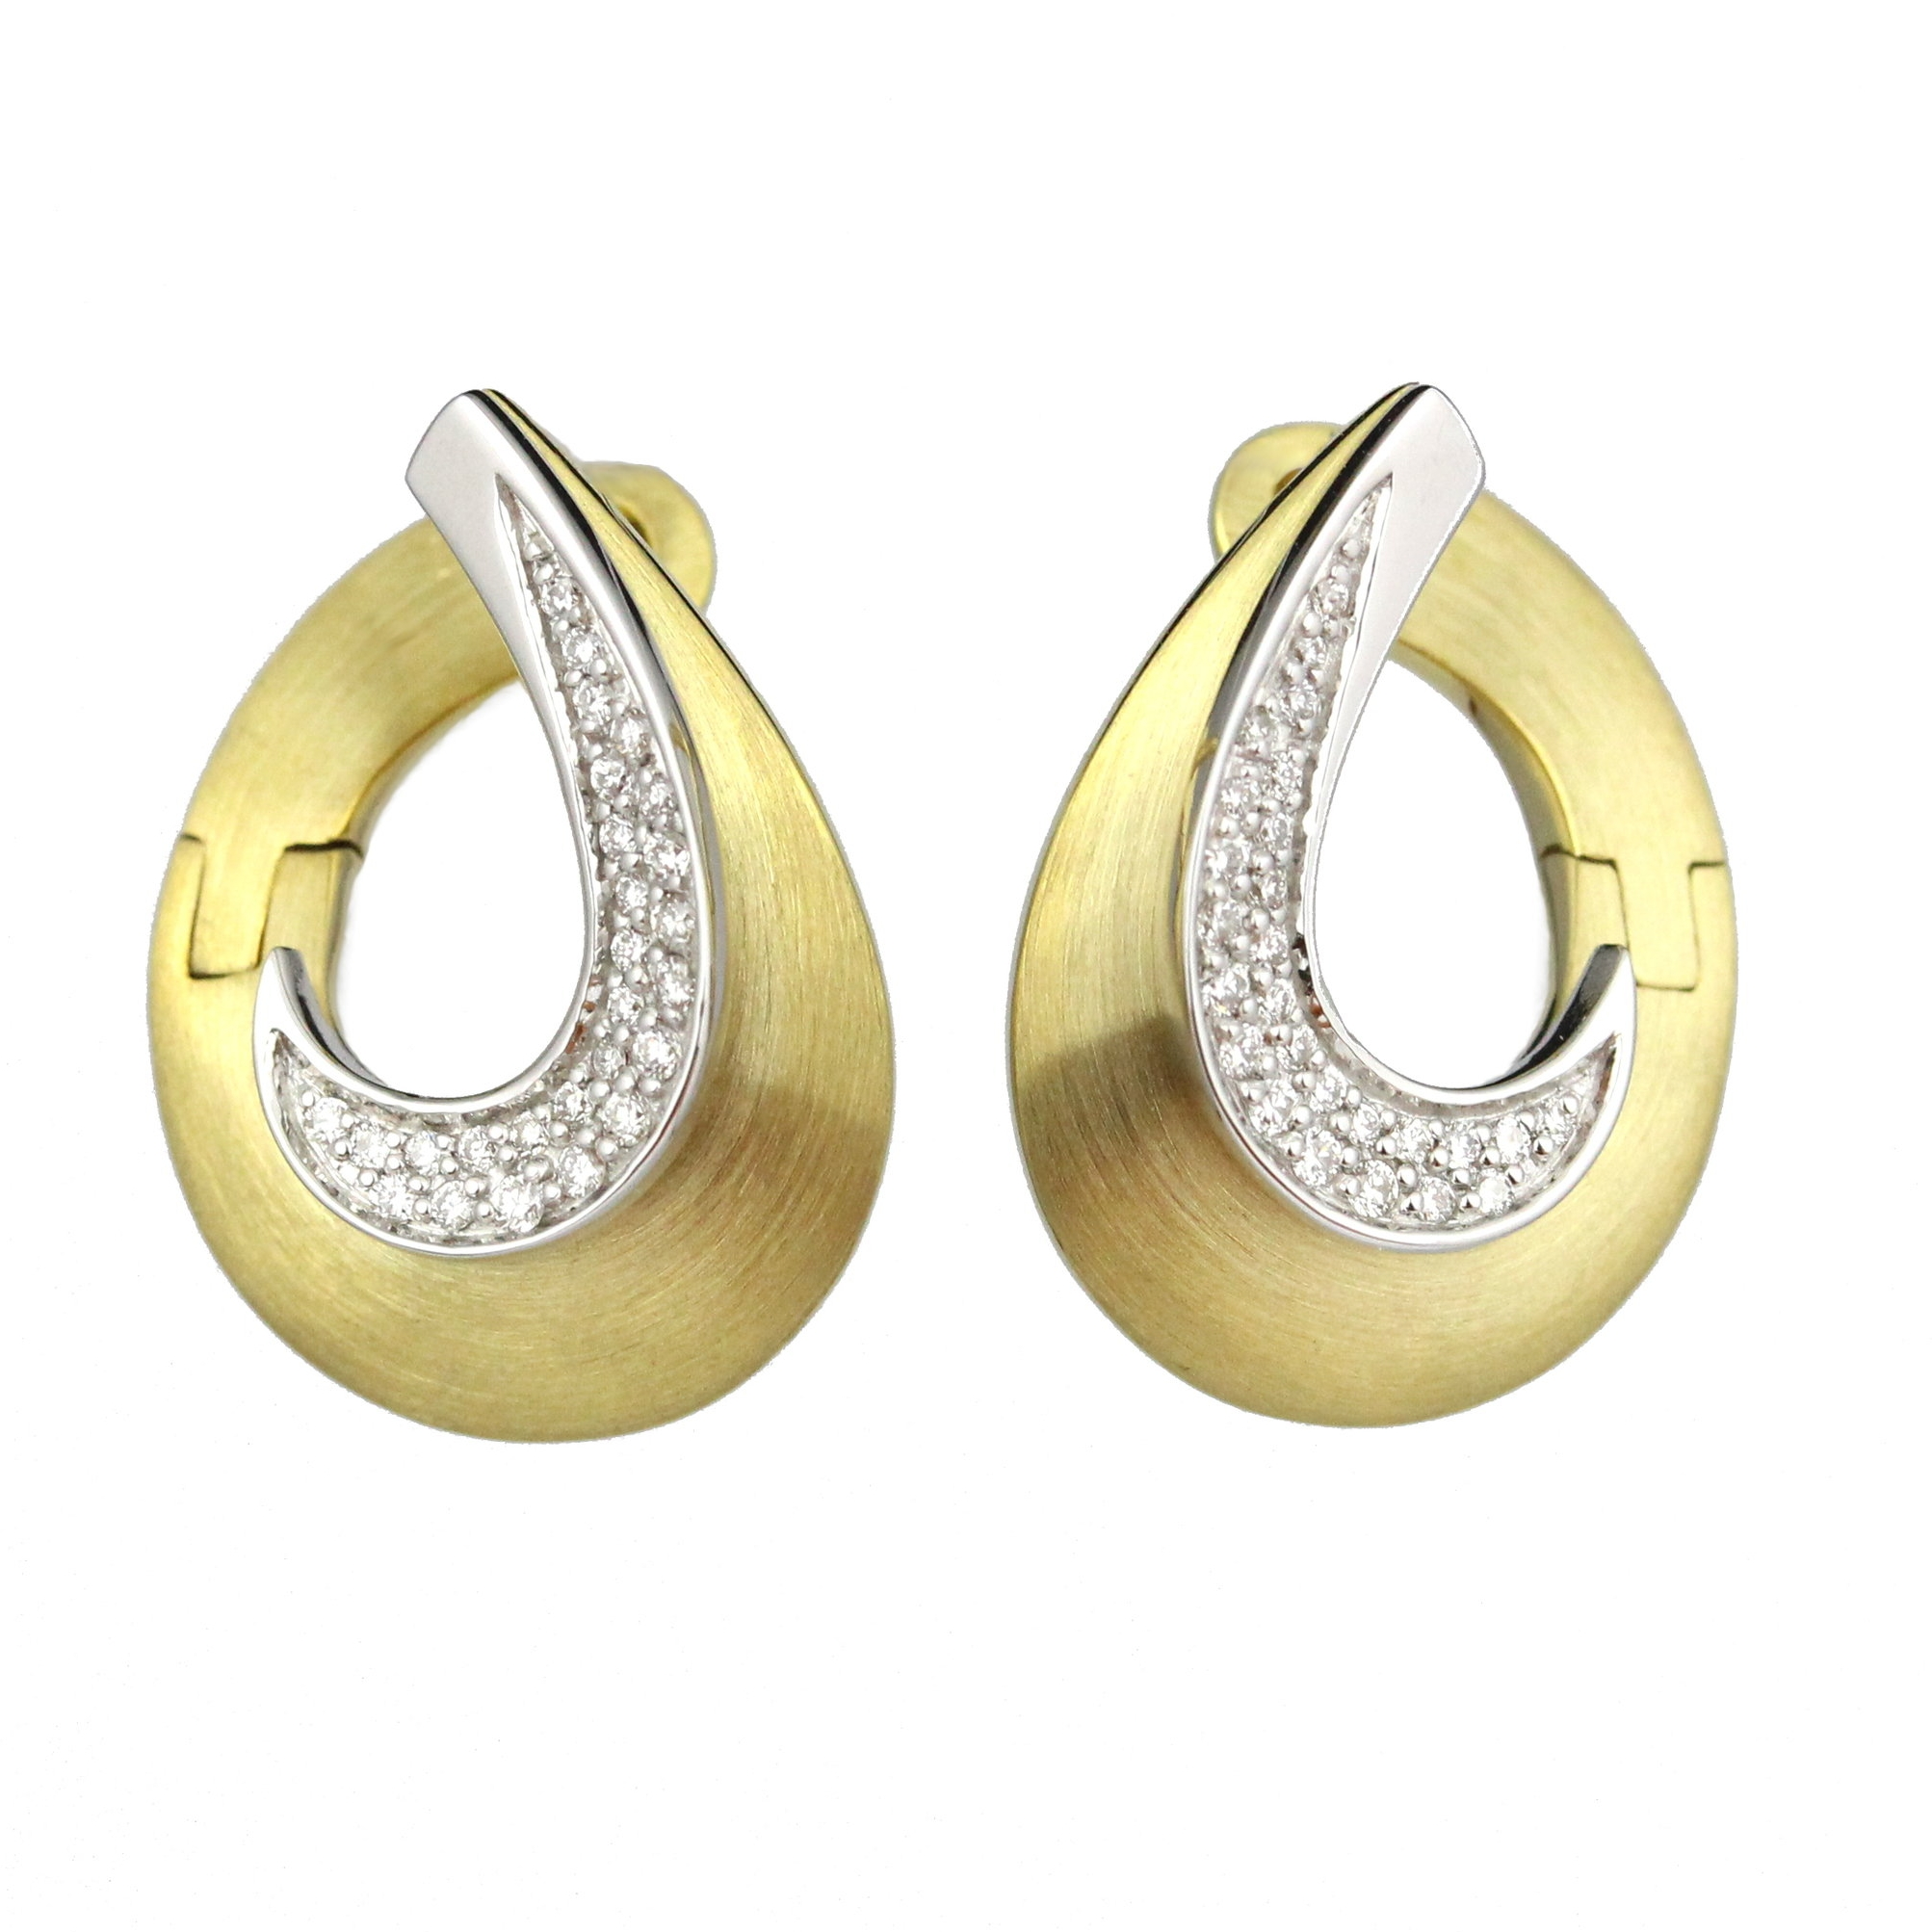 Diamonds set in white gold with brushed finish yellow gold earrings.